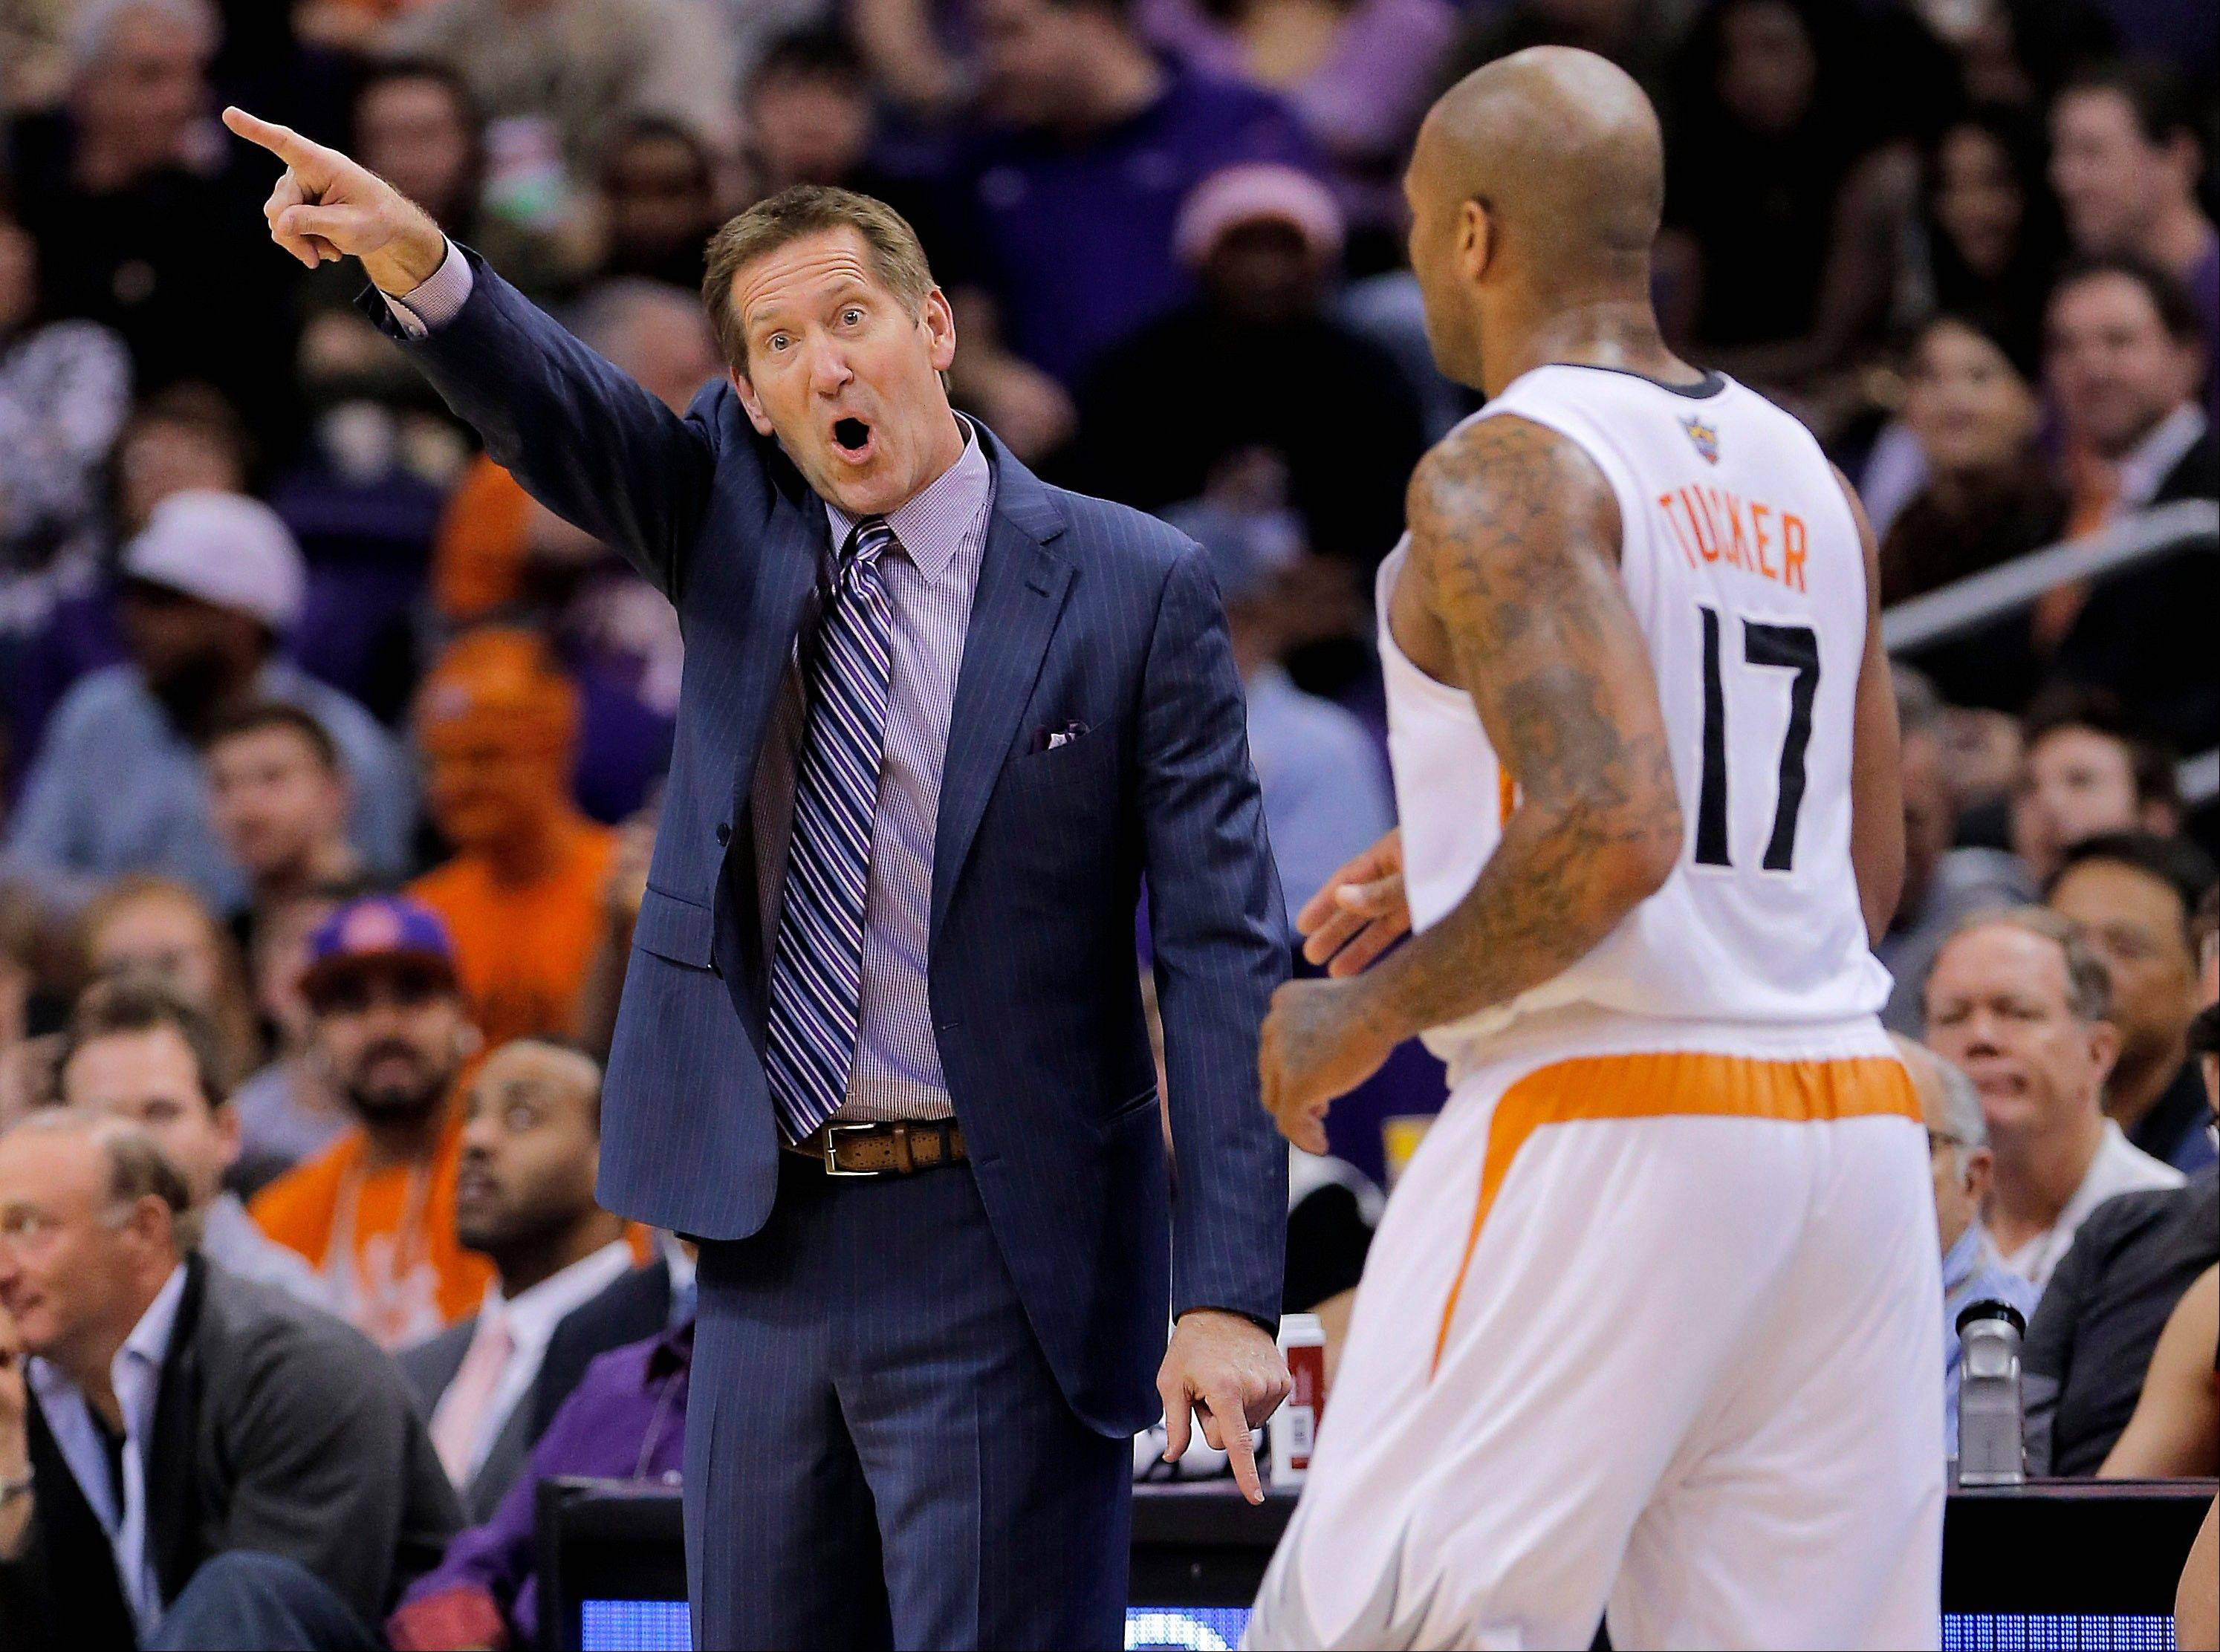 Jeff Hornacek has his Phoenix Suns rolling at 20-12 in his first season as an NBA head coach. Hornacek's Suns face the Bulls on Tuesday night at the United Center.